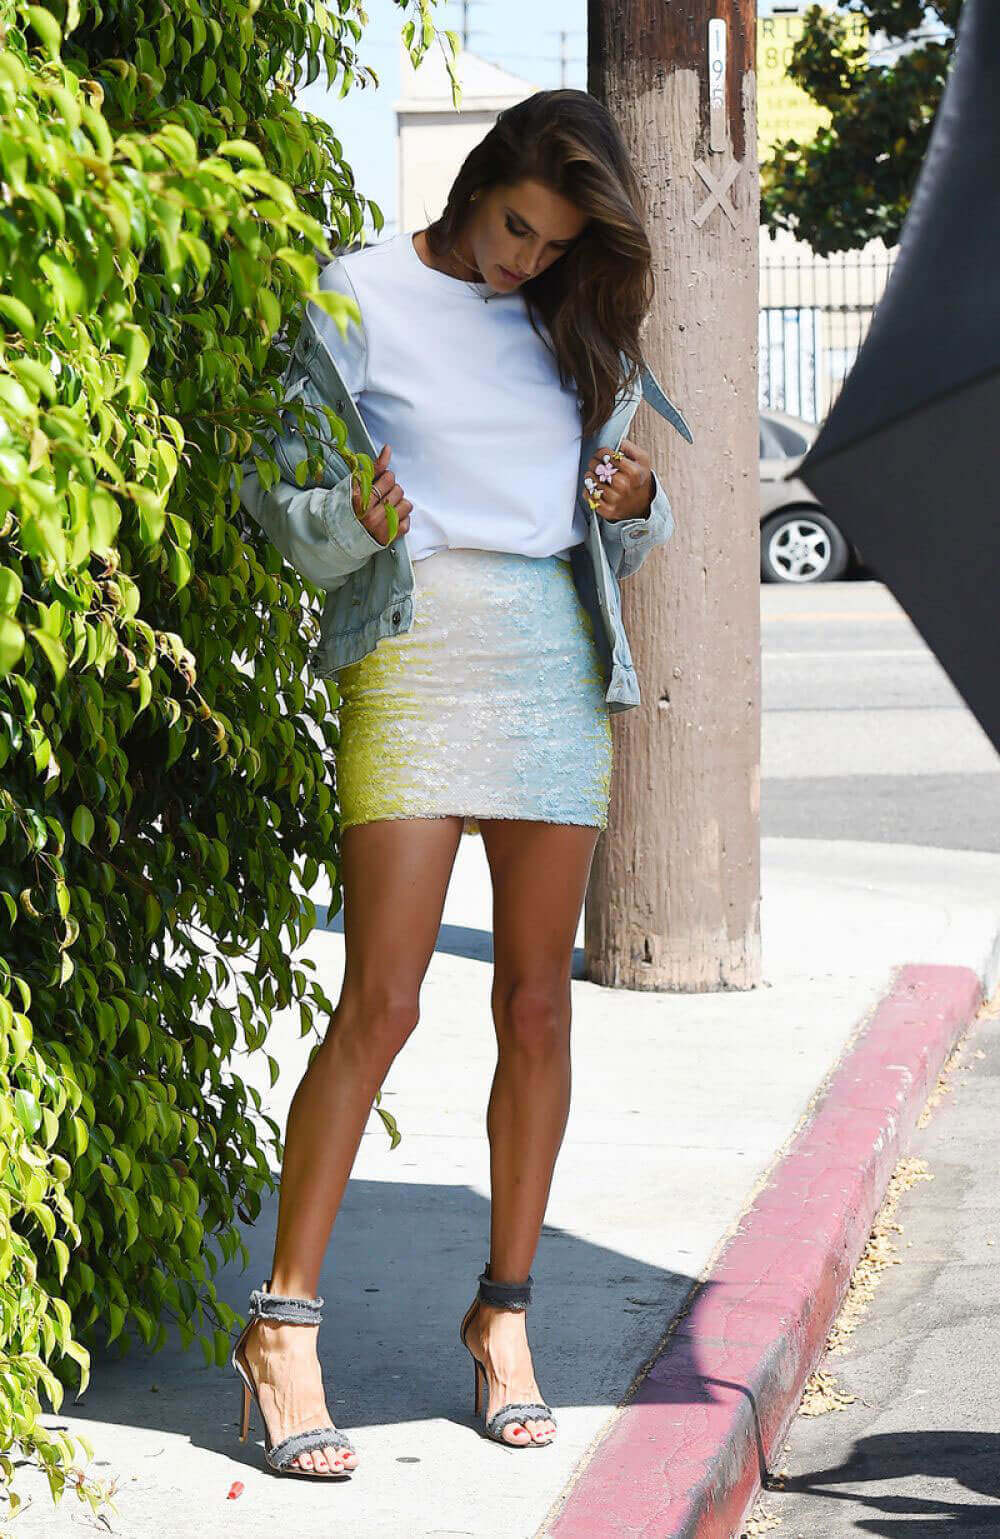 Alessandra Ambrosio Stills on the Set of a Photoshoot in Los Angeles